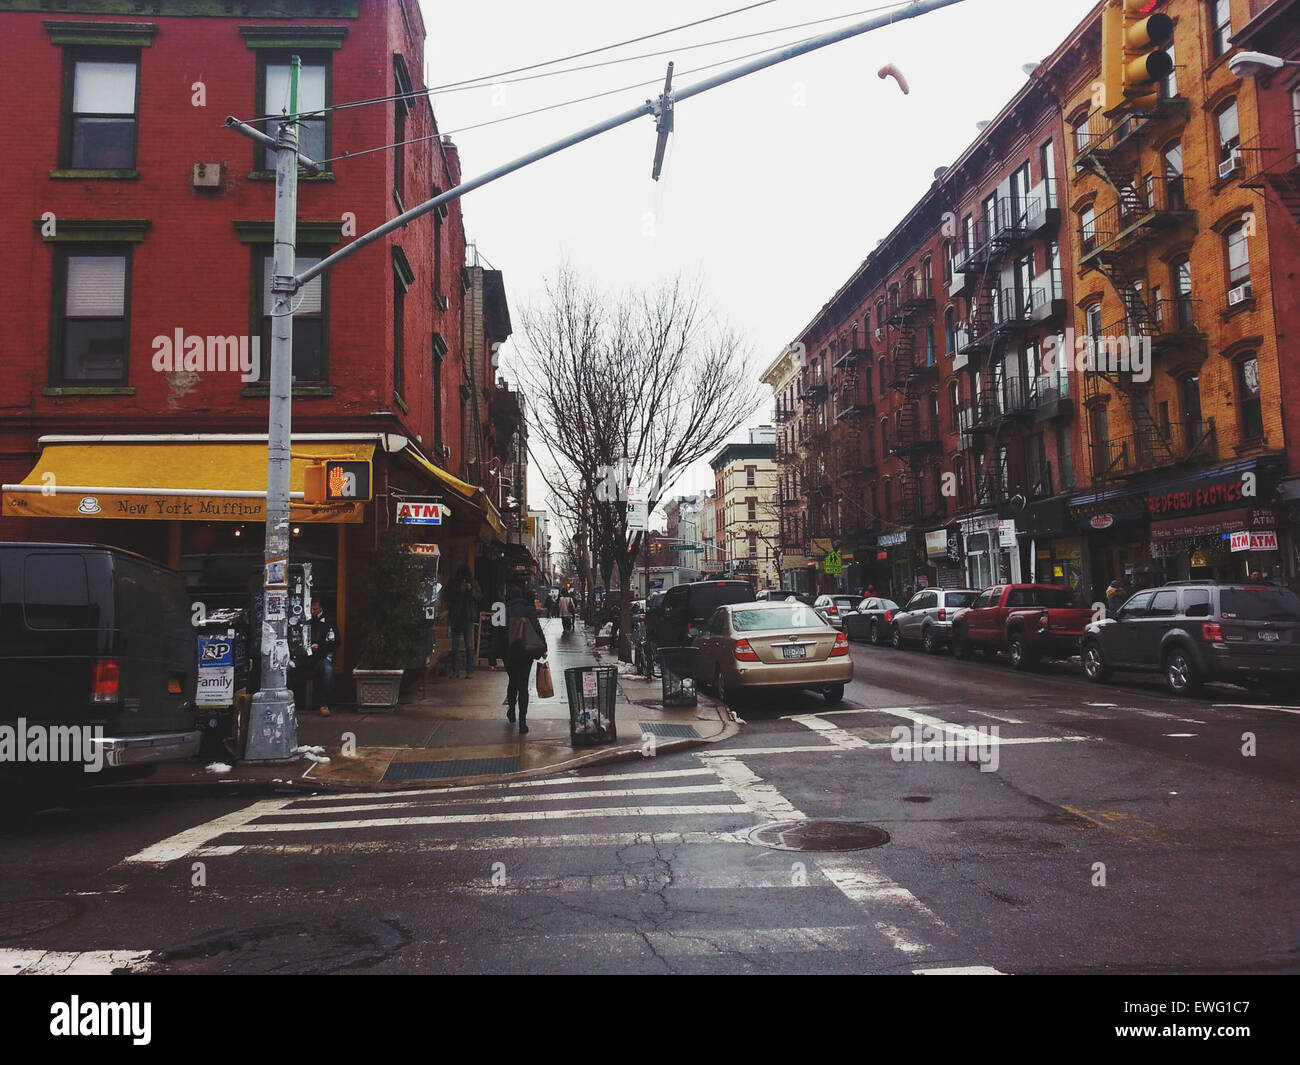 New York Street by Muffin Shop ATM Architecture Cars Crosswalk New York Muffins Street Streetlight automobile buildings - Stock Image